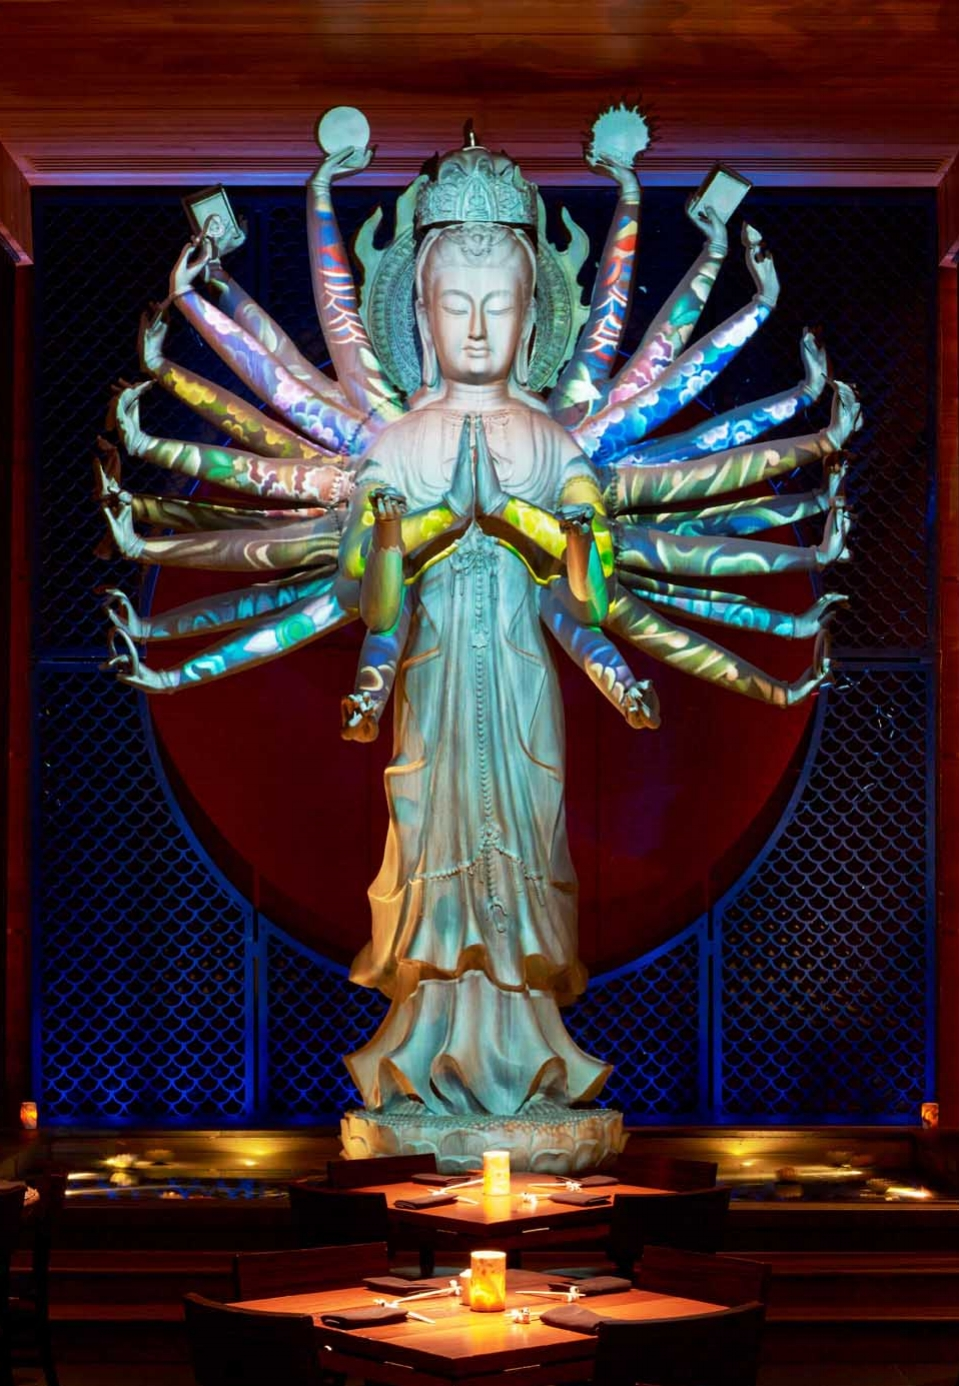 TAO Downtown   A transformative 20-foot Quan Yin statue in the restaurant